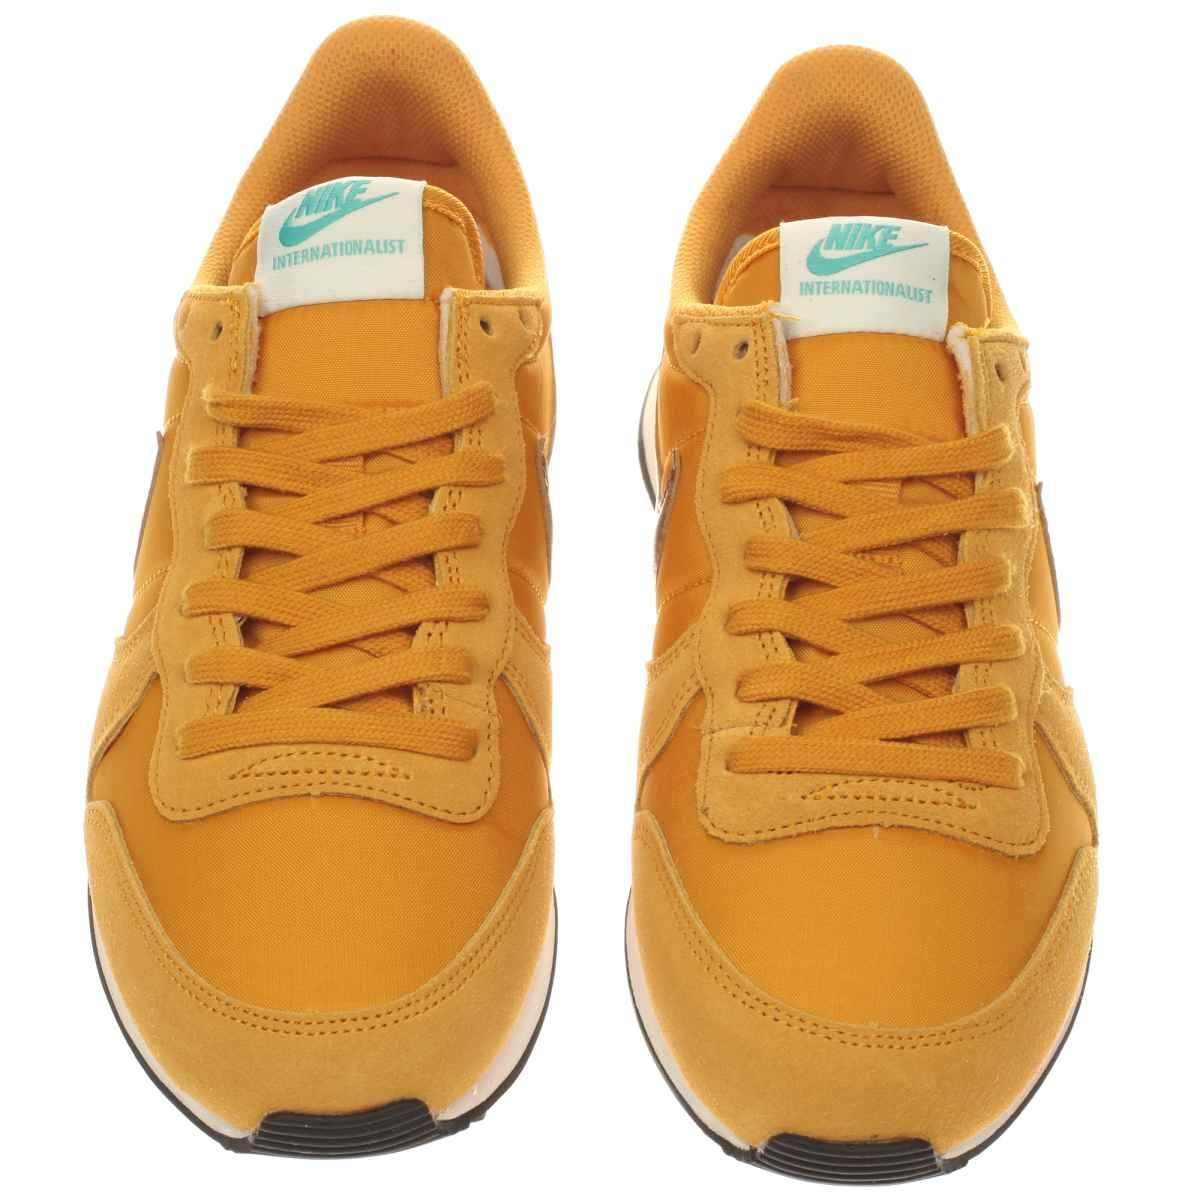 lowest price 68c52 2221d womens nike yellow internationalist trainers